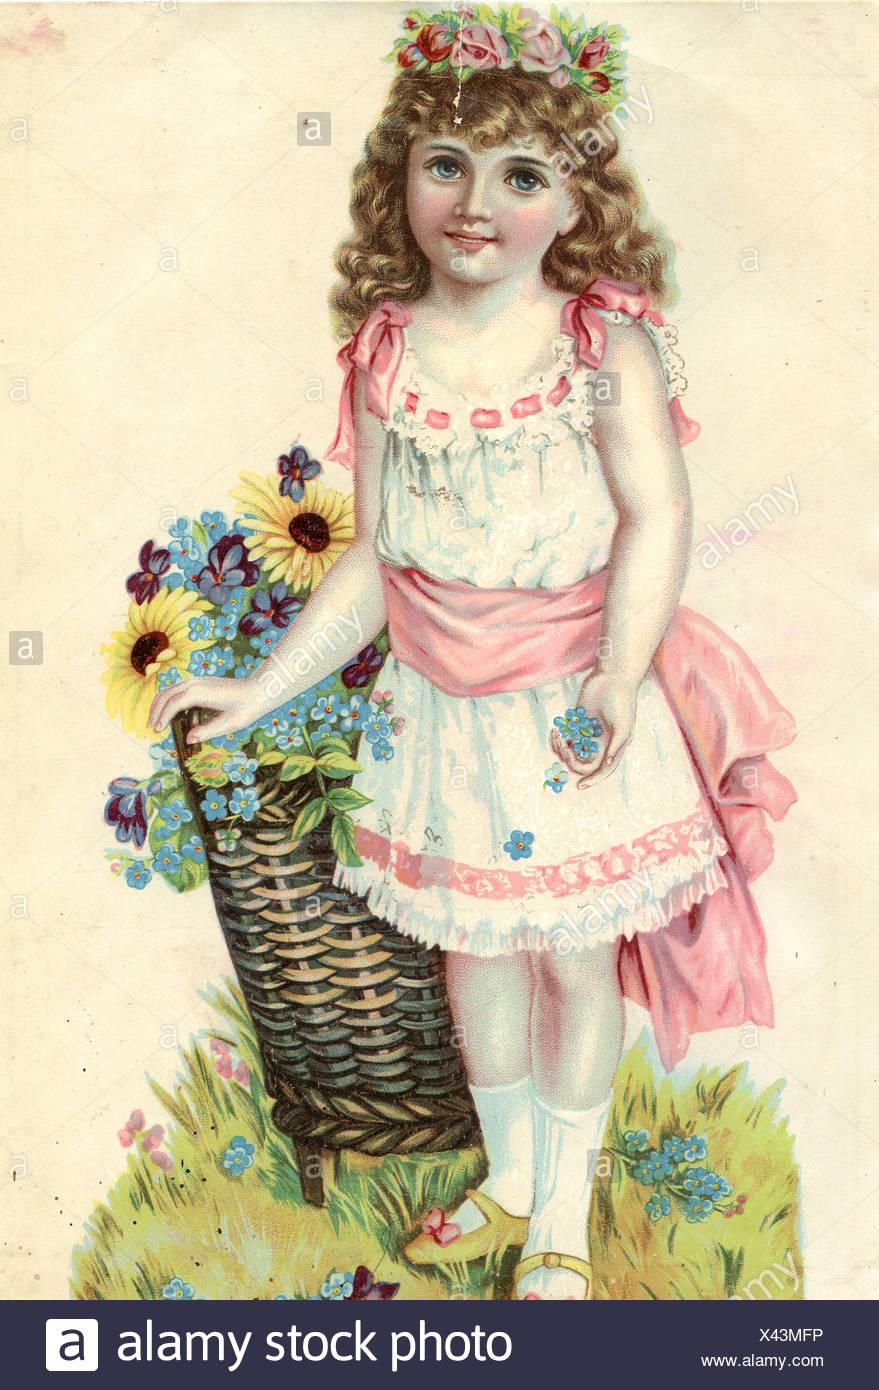 Young Girl with Floral Headress, Pulling a Basket of Flowers Stock Photo